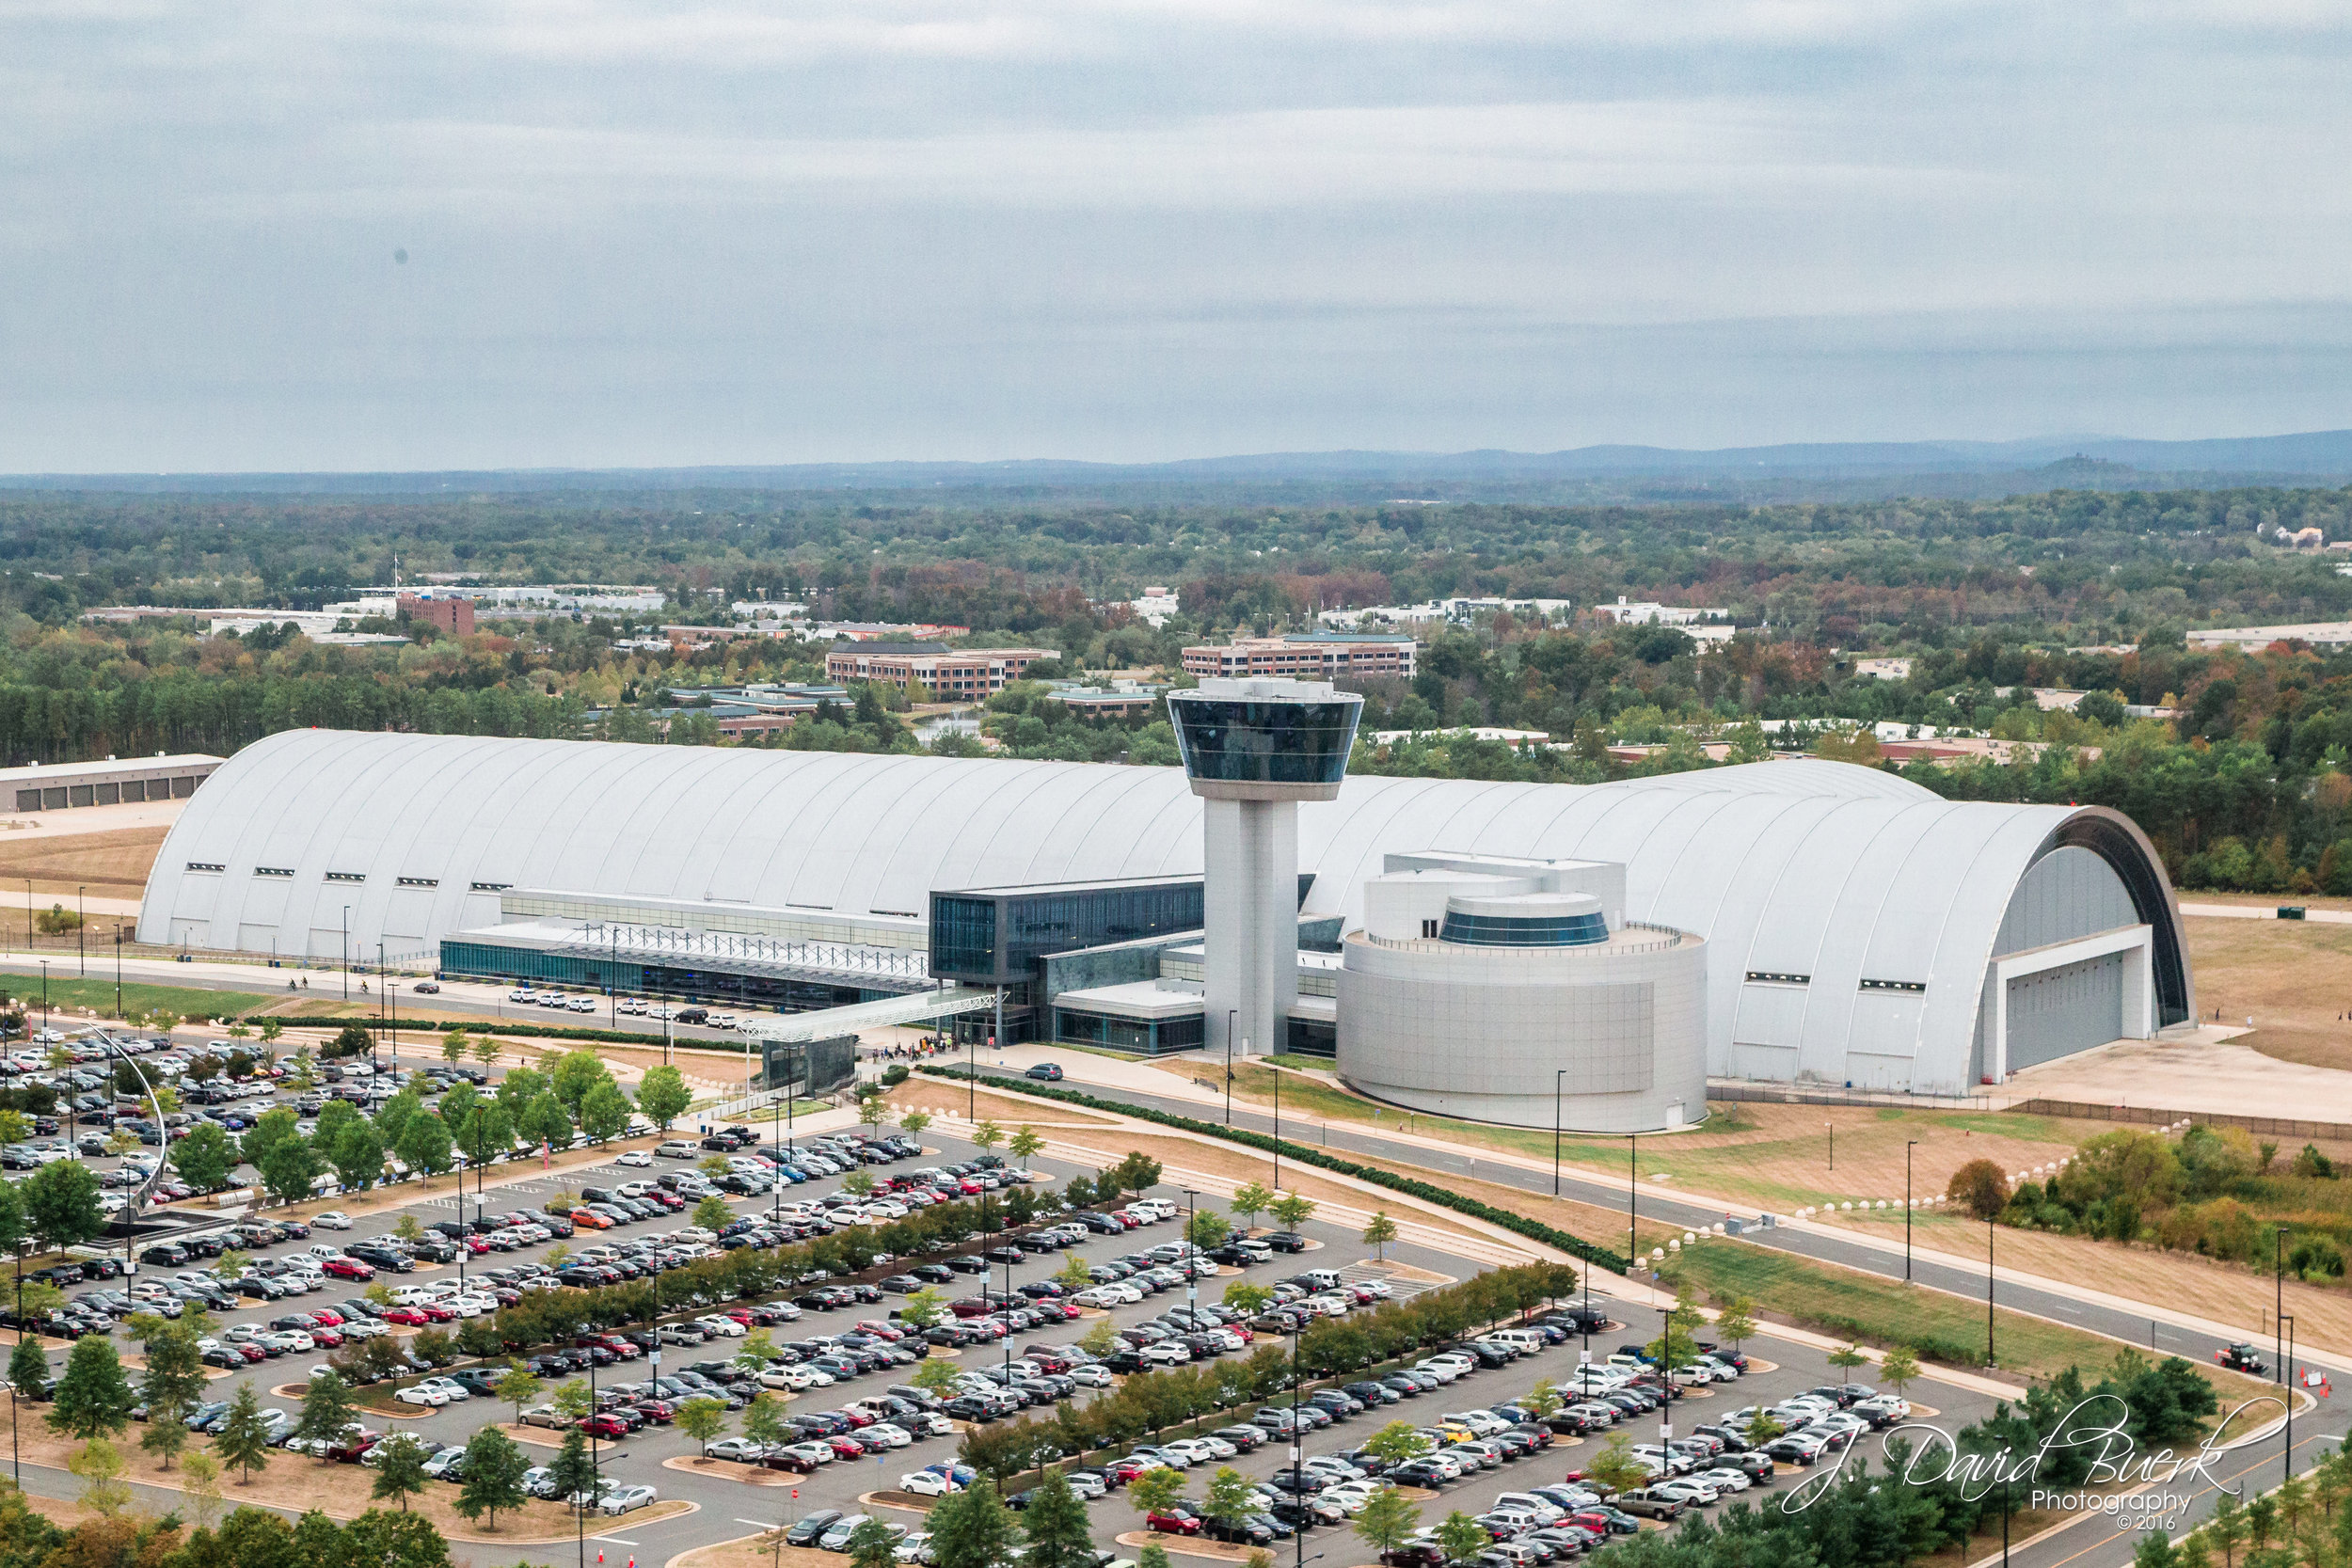 Aerial photograph of the Smithsonian National Air and Space Museum's Steven F. Udvar-Hazy Center in Dulles, Virginia.  Photographed via helicopter, 250ft AGL.